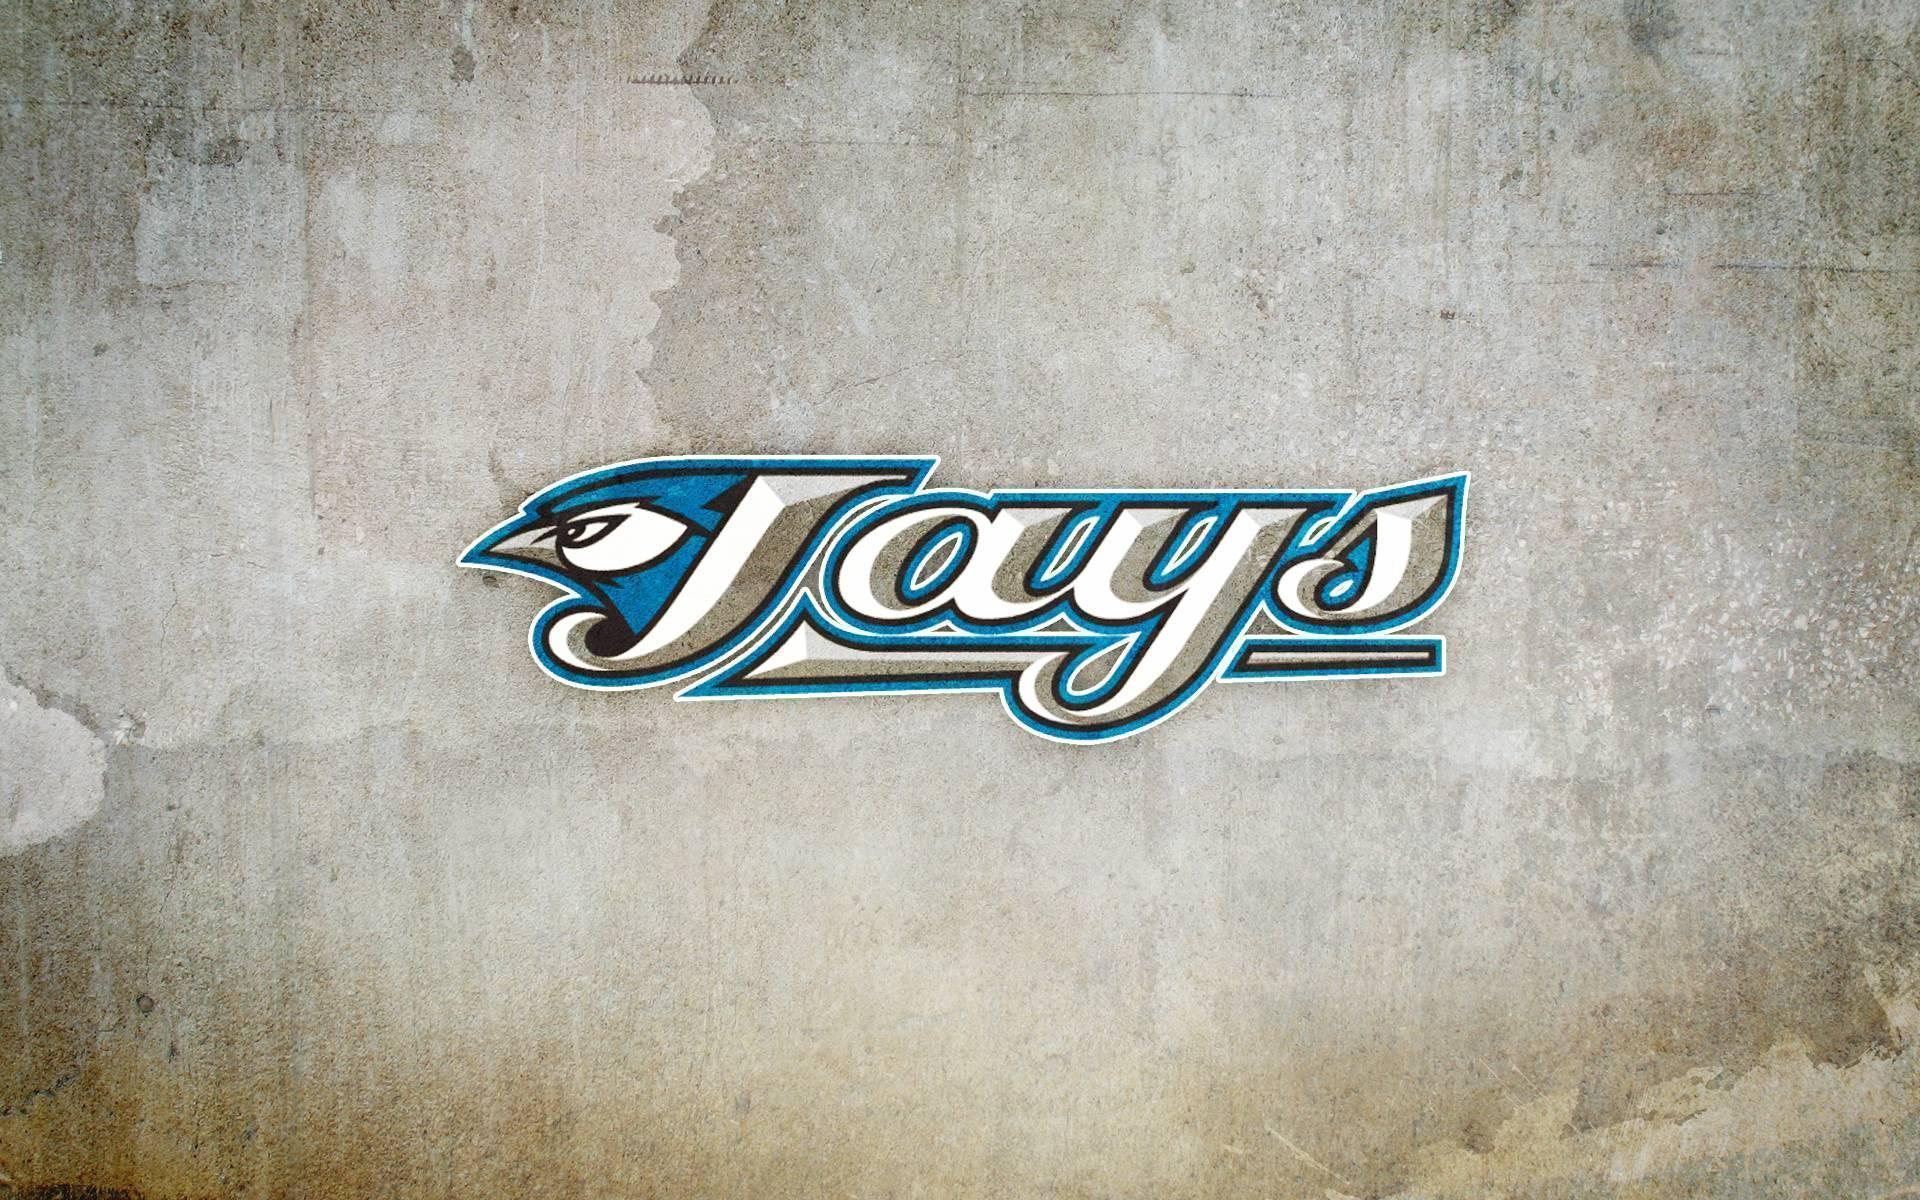 Toronto Blue Jays Wallpapers 3 4638 Hd Mlb Wallpapers Res